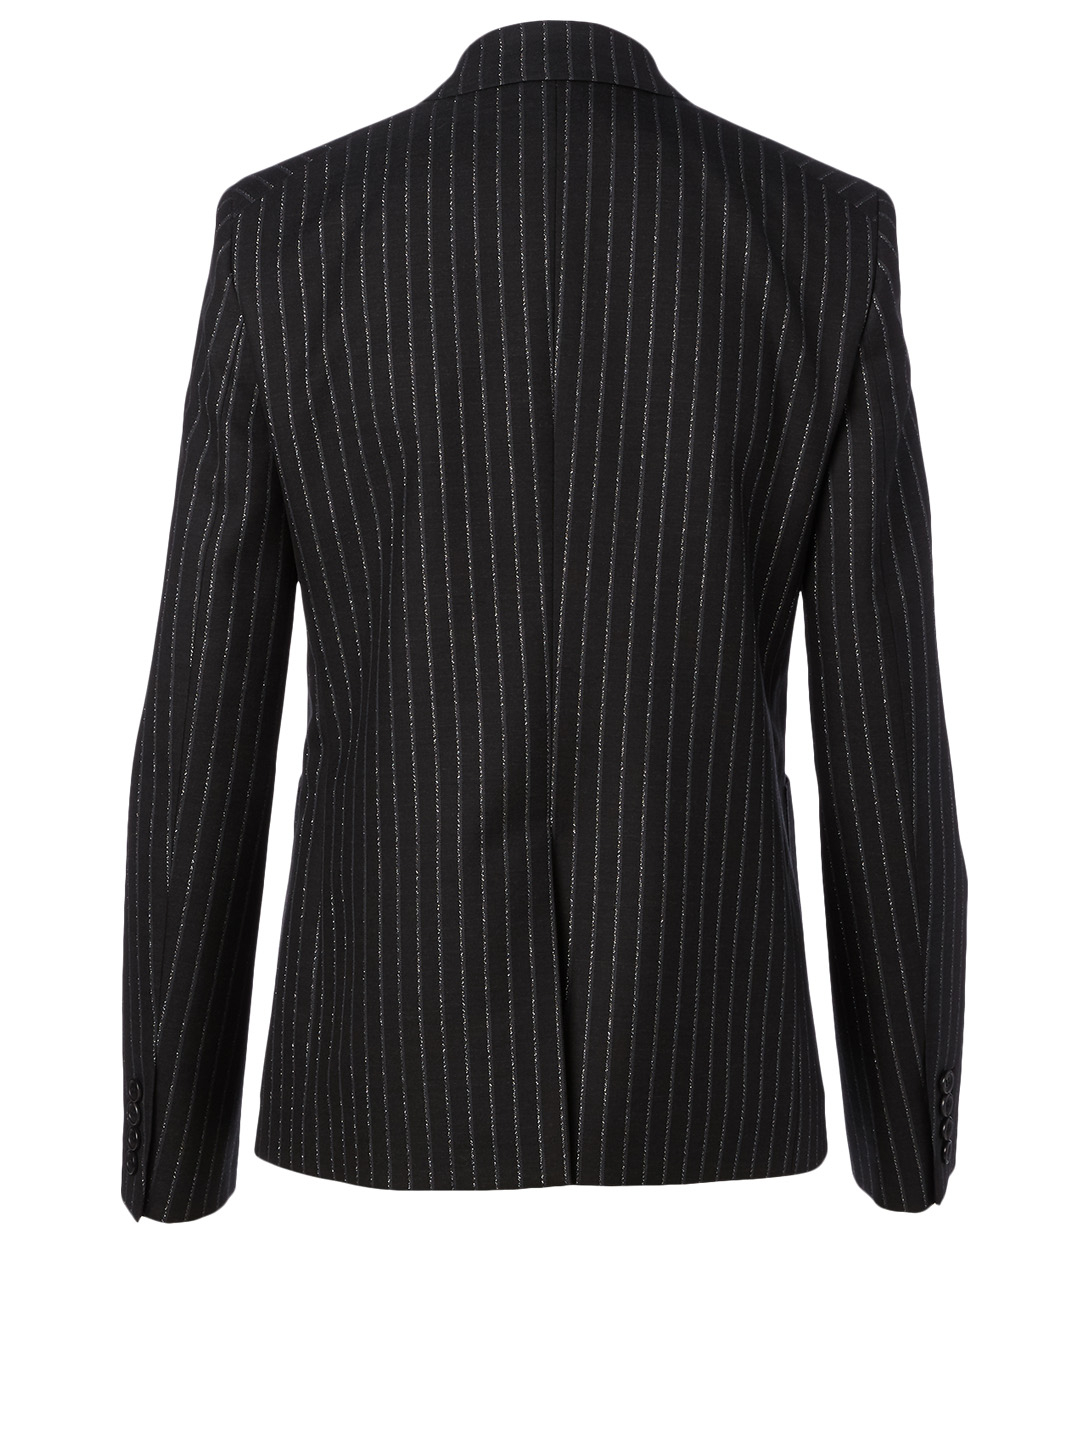 SAINT LAURENT Wool-Blend Double-Breasted Blazer In Pinstripe Print Women's Black